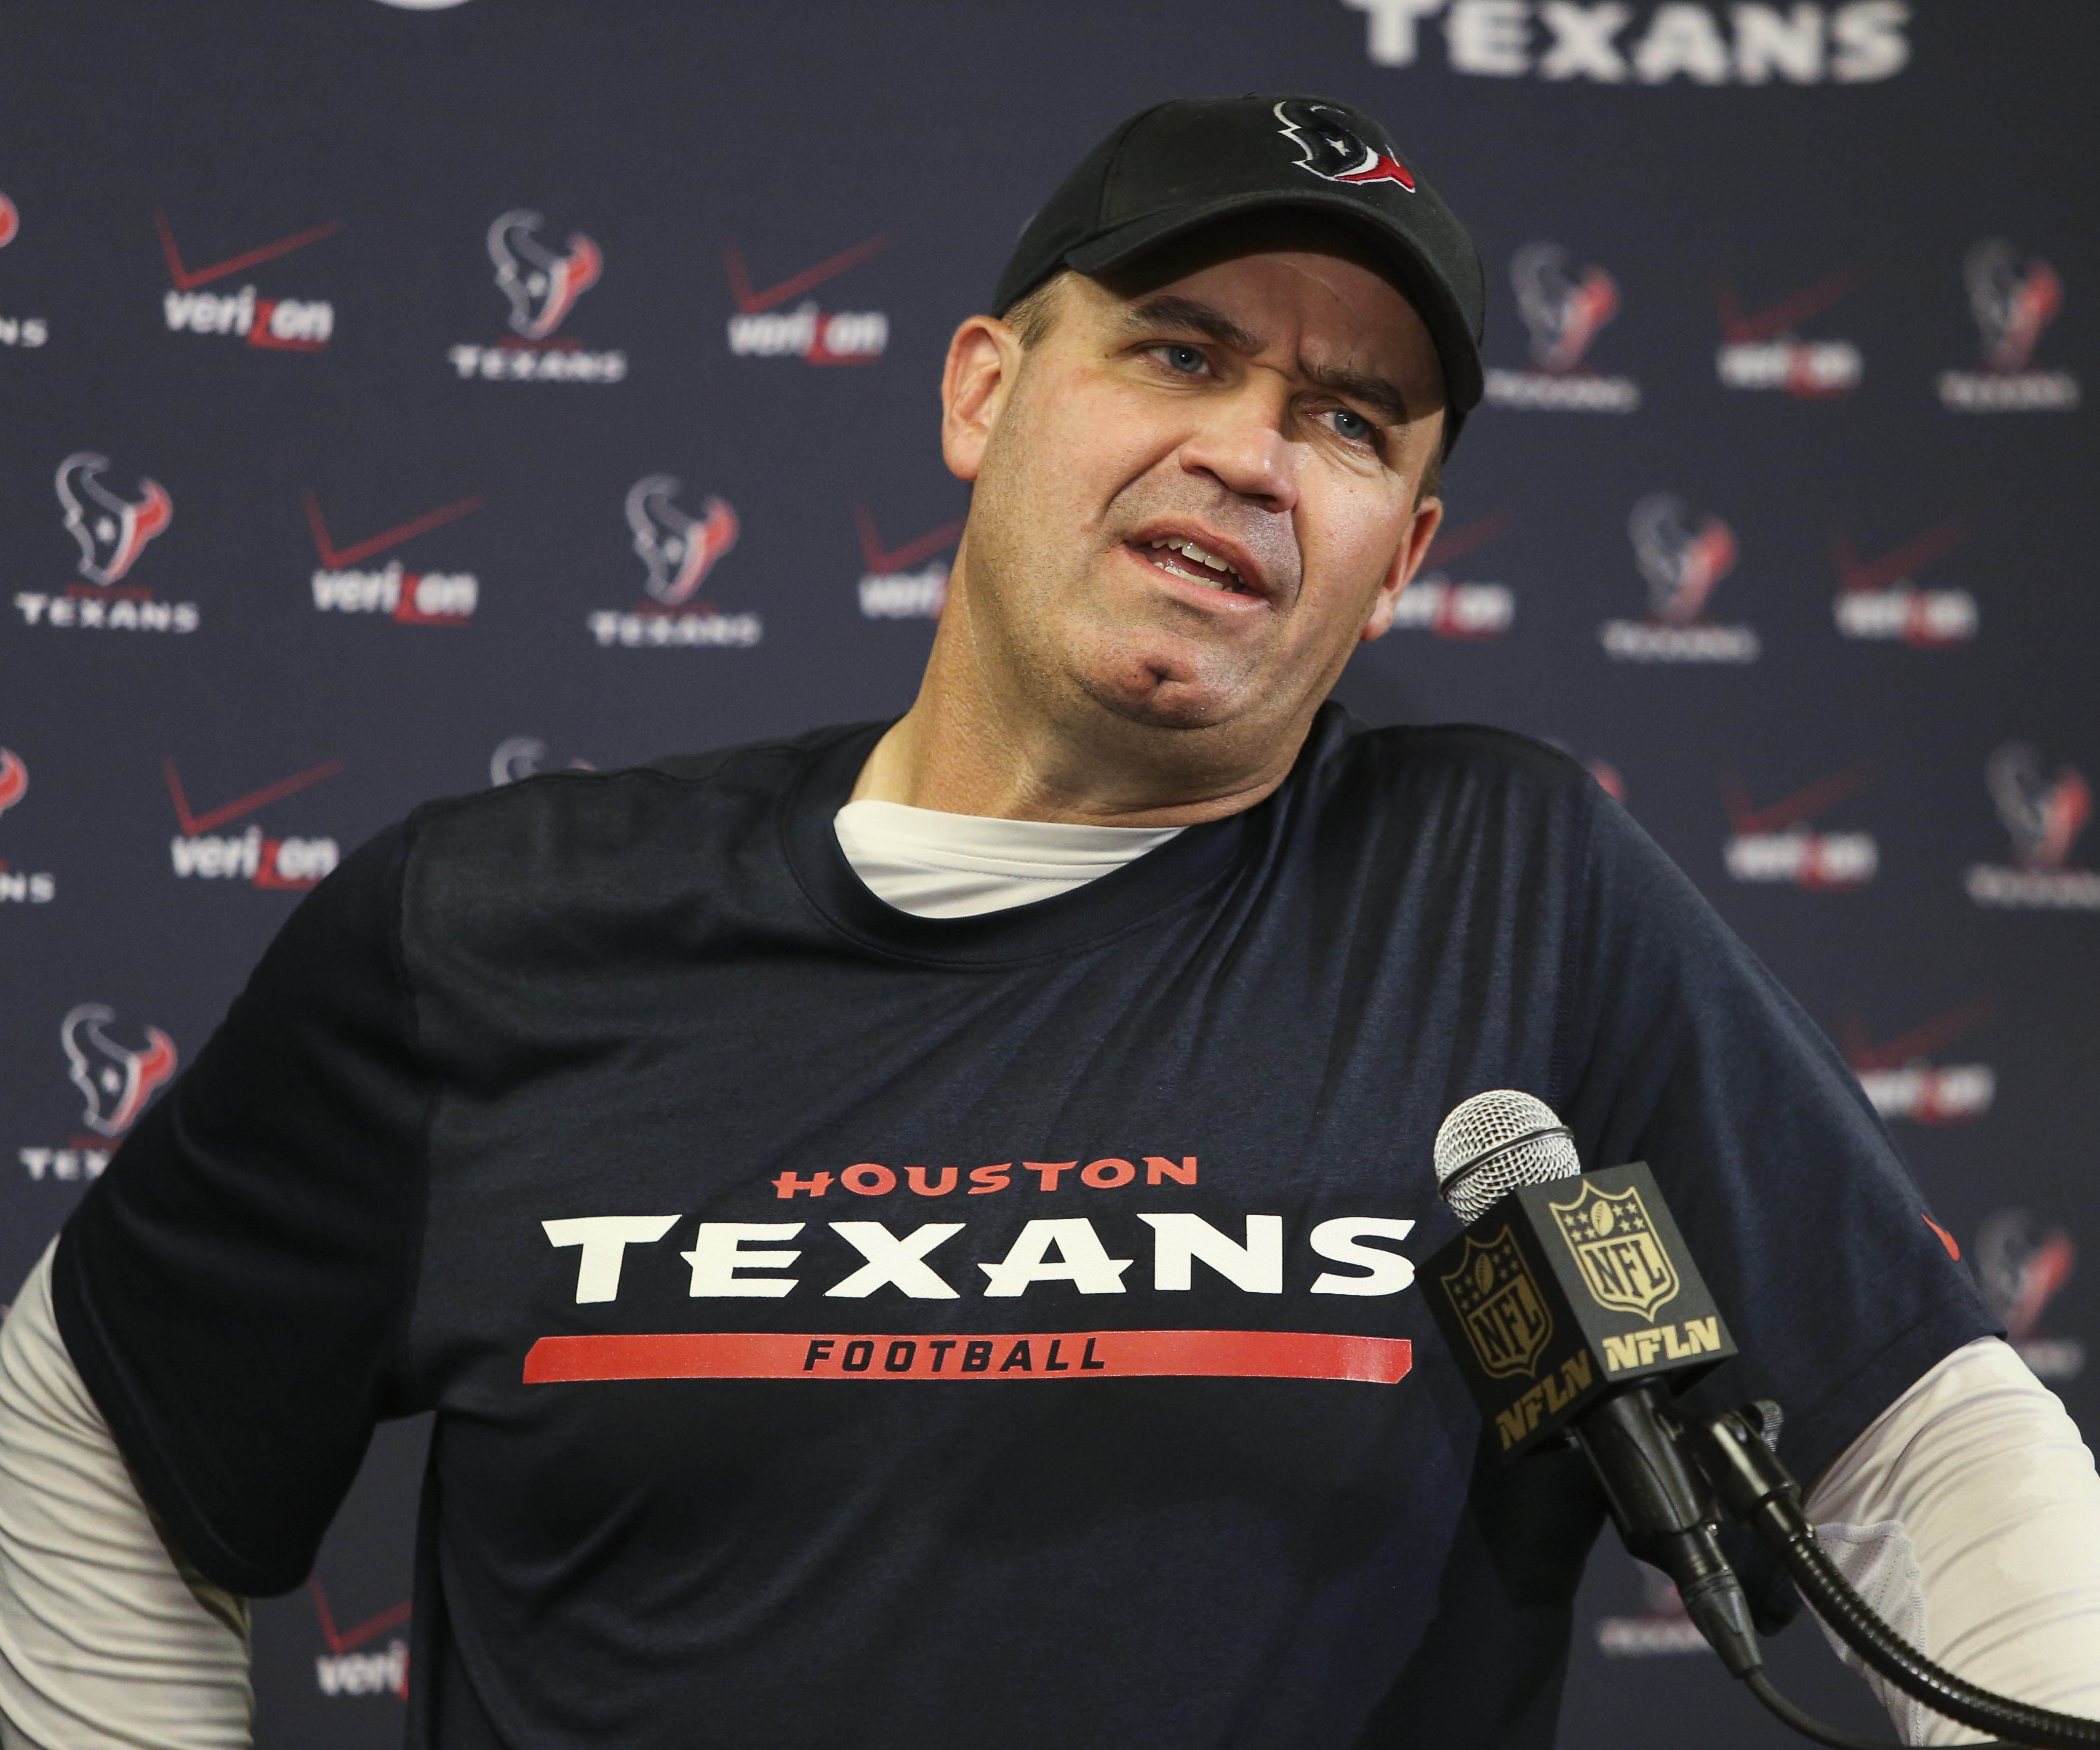 Why are we talking about Mallett?!!  Brian Hoyer is the starting quarterback of this team...